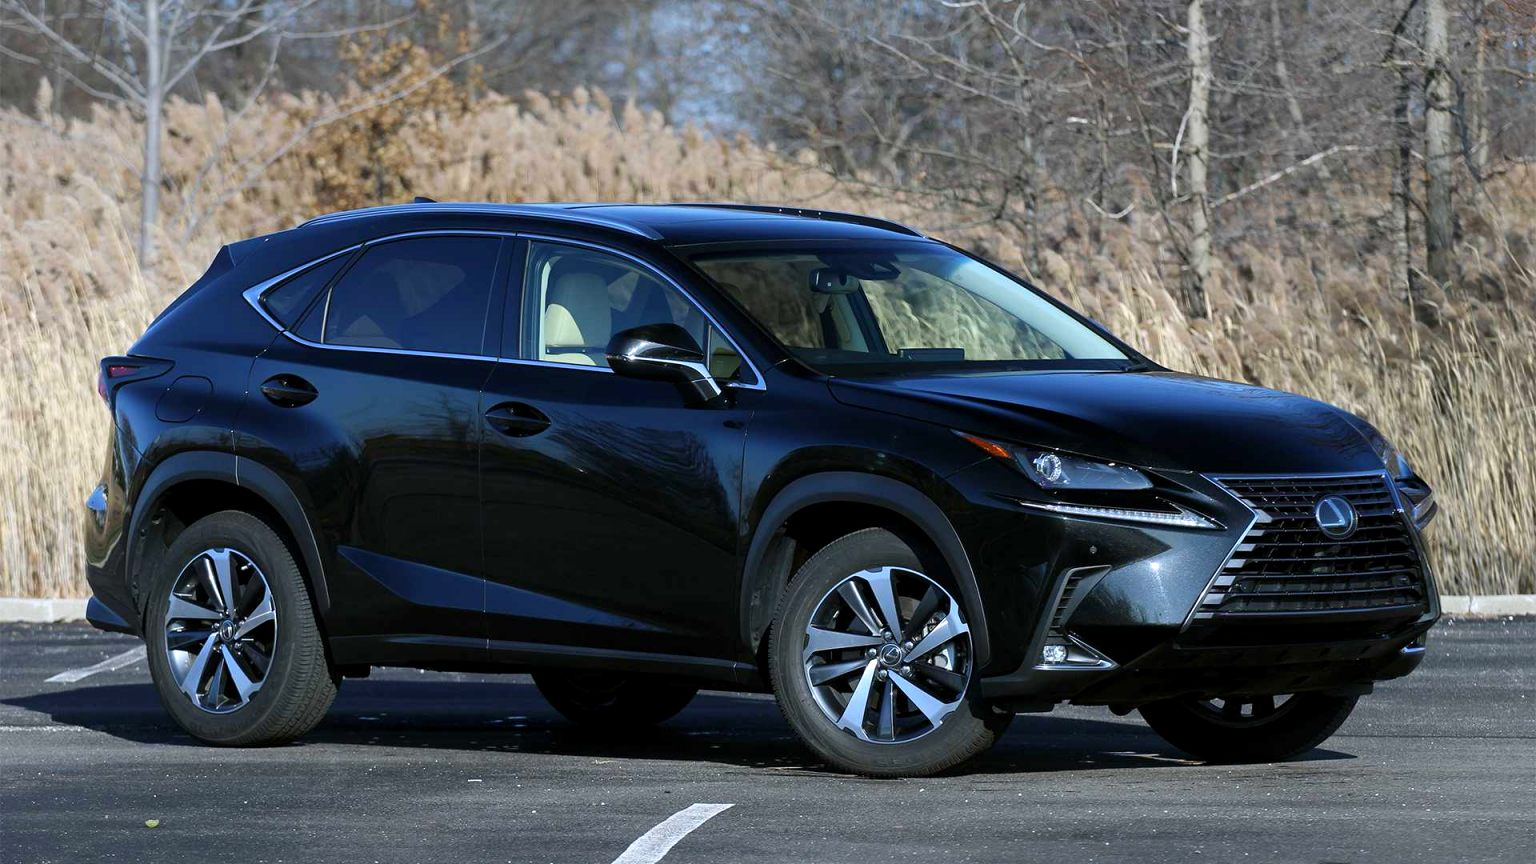 2020 lexus nx 300 price Release Date and Concept